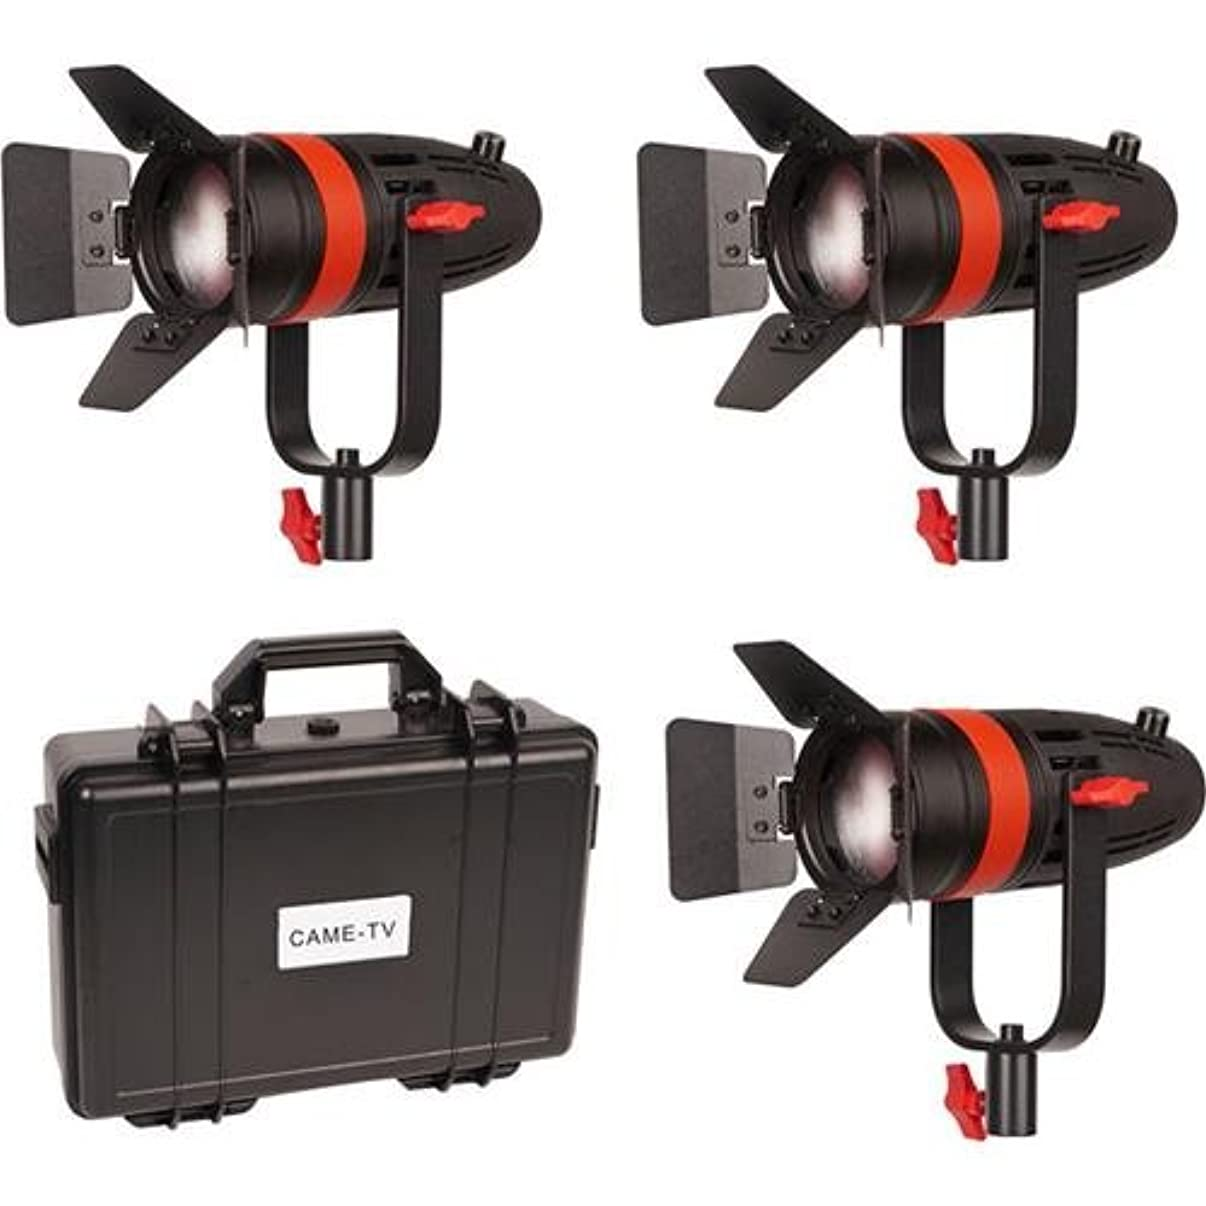 Came-TV Boltzen 55W Focusable LED Fresnel 3-Light Kit, Includes 3x Soft Filters, 3x Milky-White Filters, 3x Orange Filters